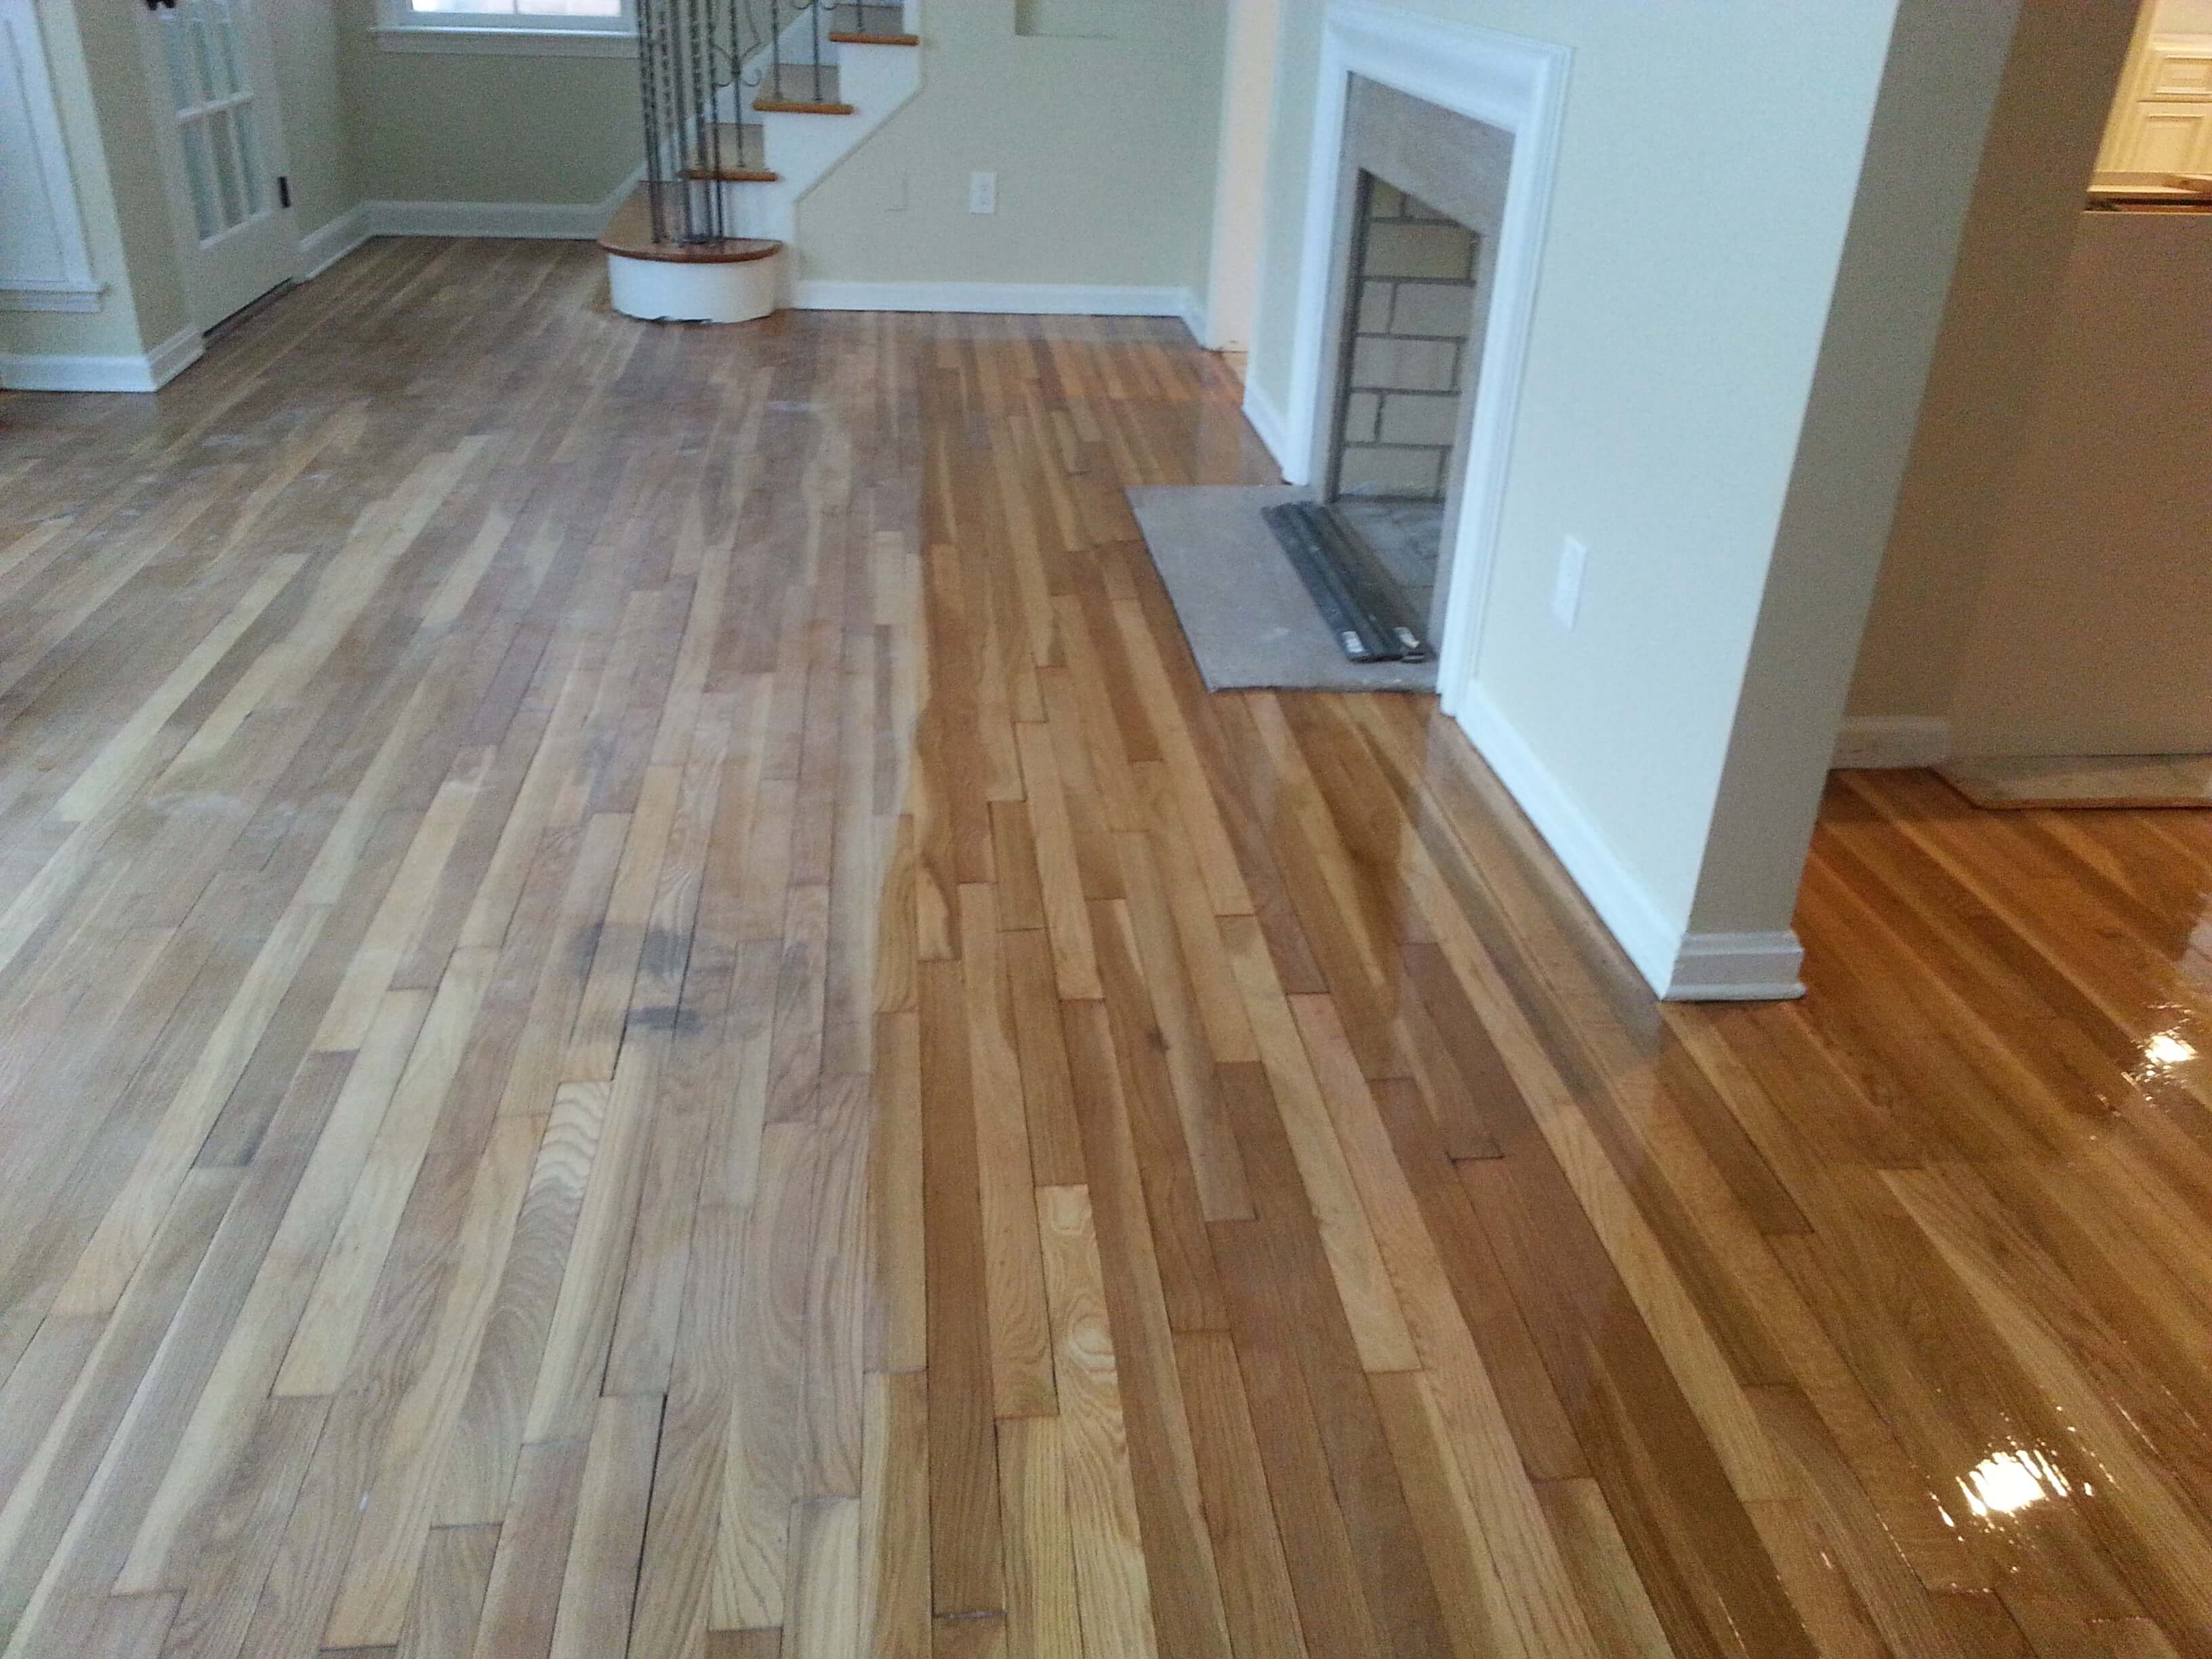 The effects of restaining your wood flooring